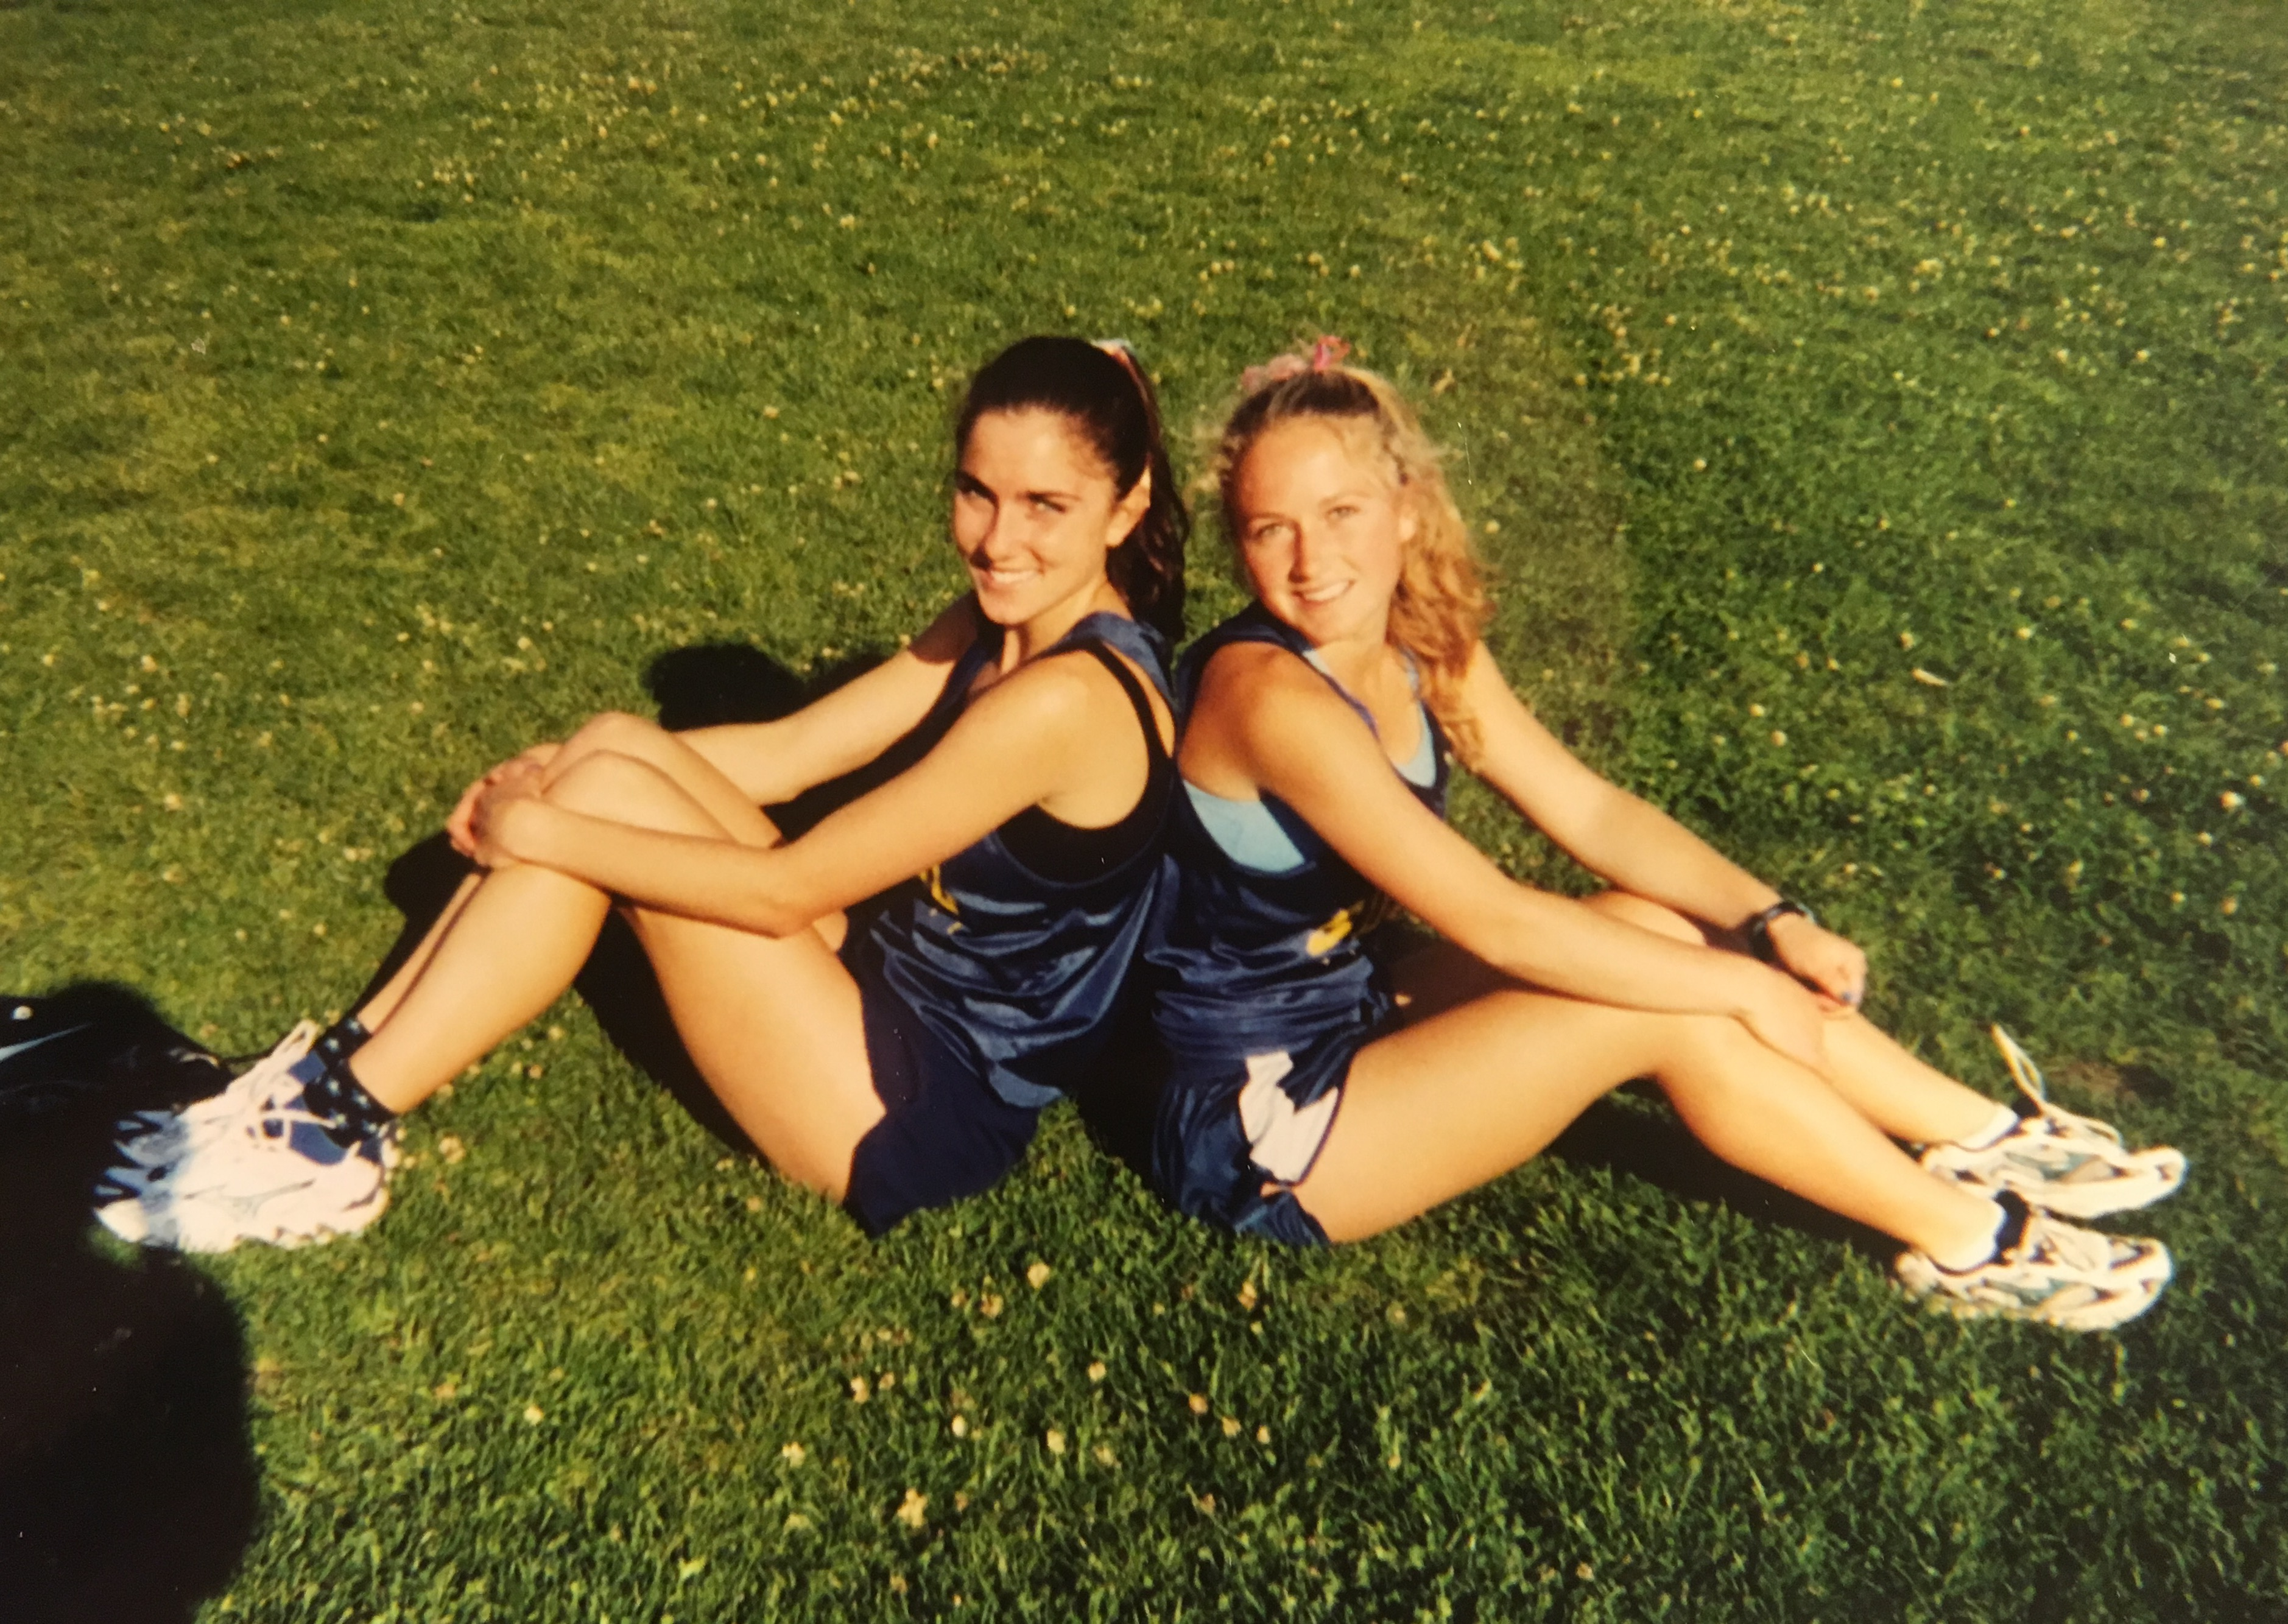 2001 - High school track: where the friendship and dreaming started